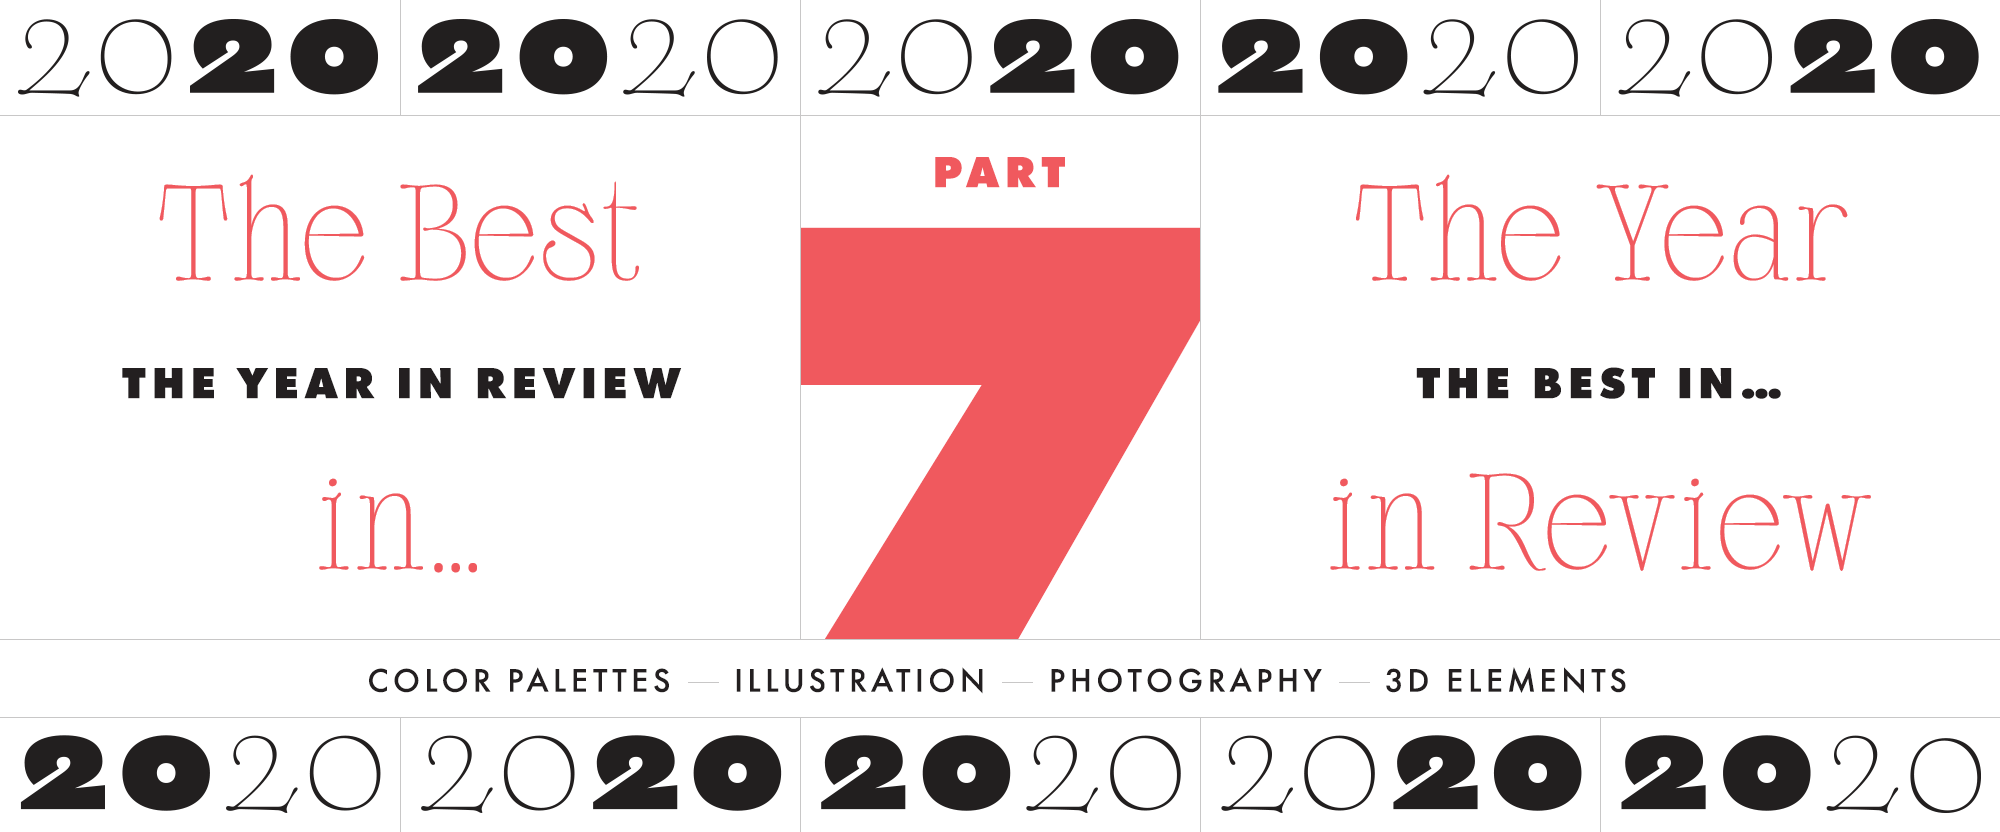 The Year in Review, Part 7: The Best in Color Palettes, Illustration, Photography, and 3D Elements